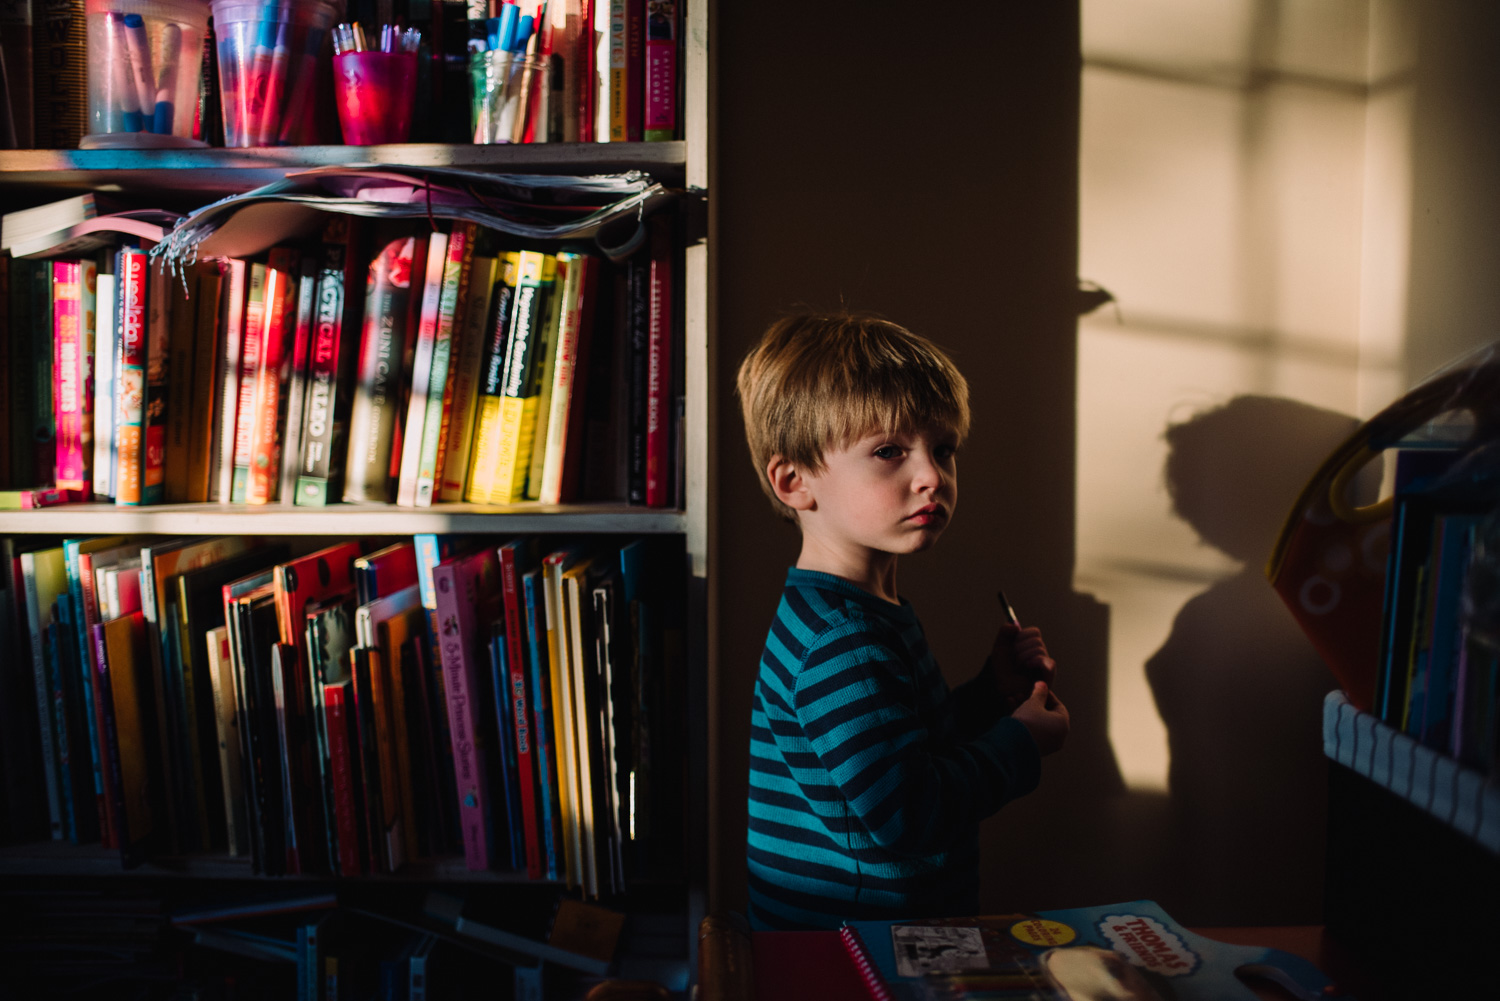 Little boy standing in the light and shadow of afternoon light.